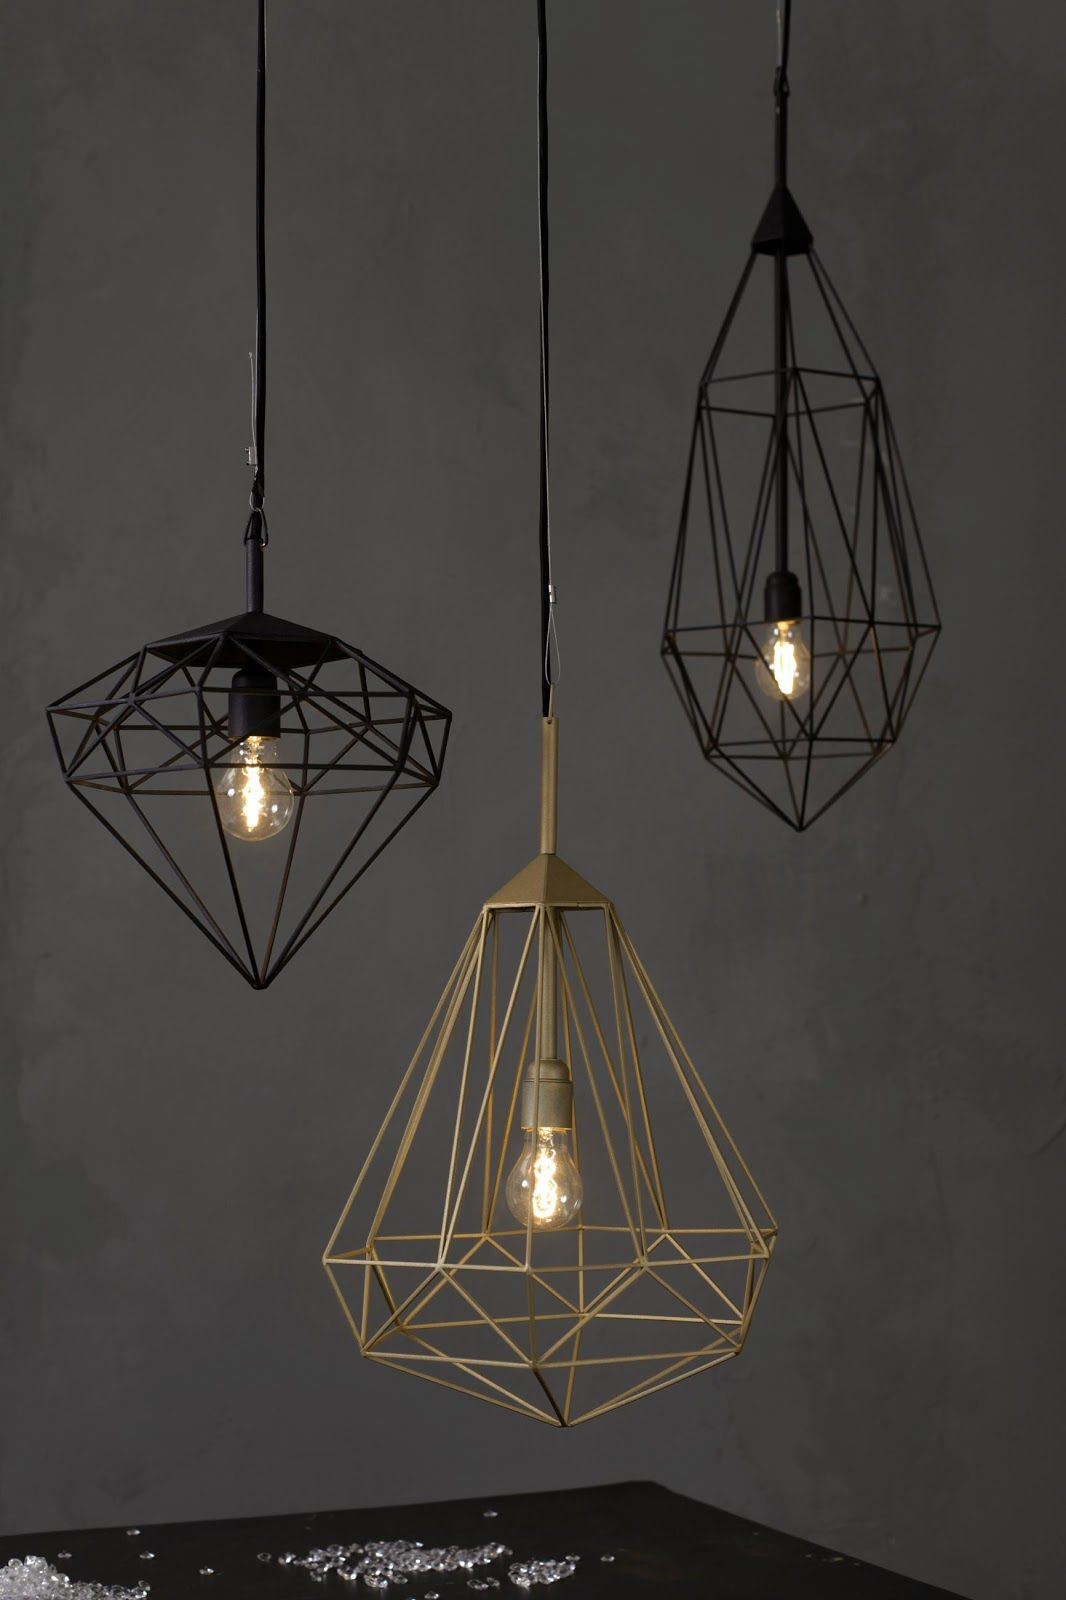 Hanging light gems diamonds by jspr pinterest diamond design geometric industrial pendant lights made from stainless steel diamonds designed by sylvie meuffels for jspr greentooth Choice Image